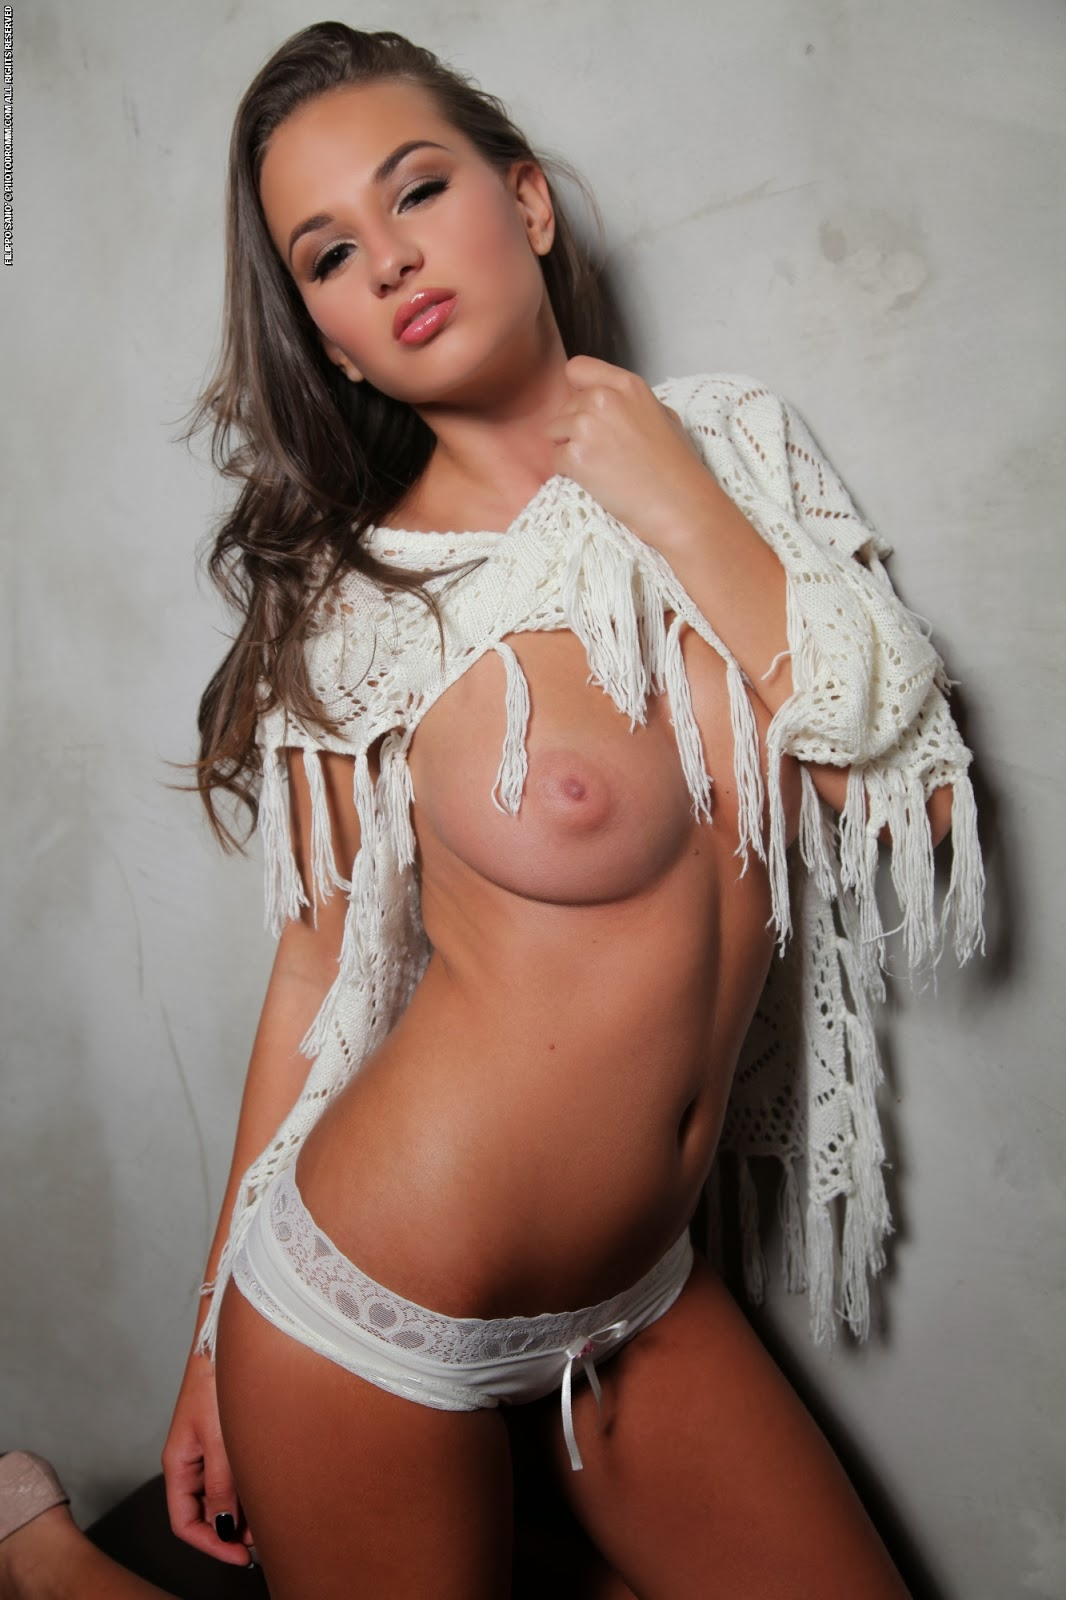 Voluptuous Gloria topless | striptease photo gallery